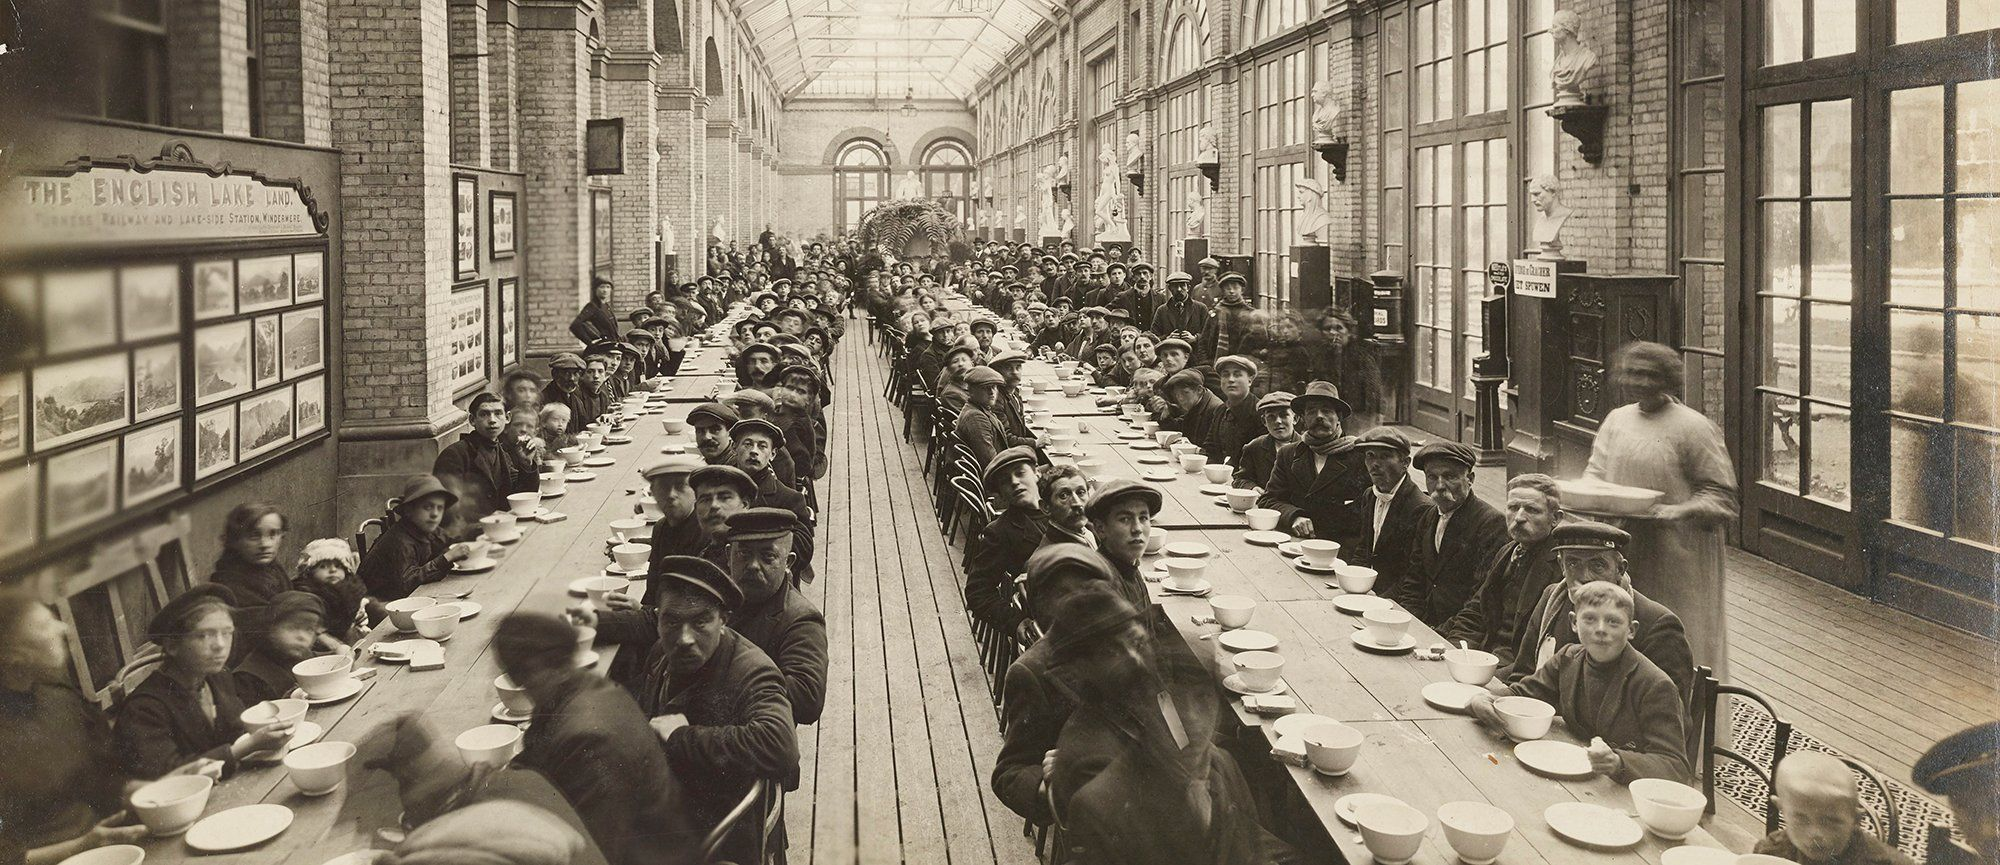 Refugees dining in the Great Hall during WWI